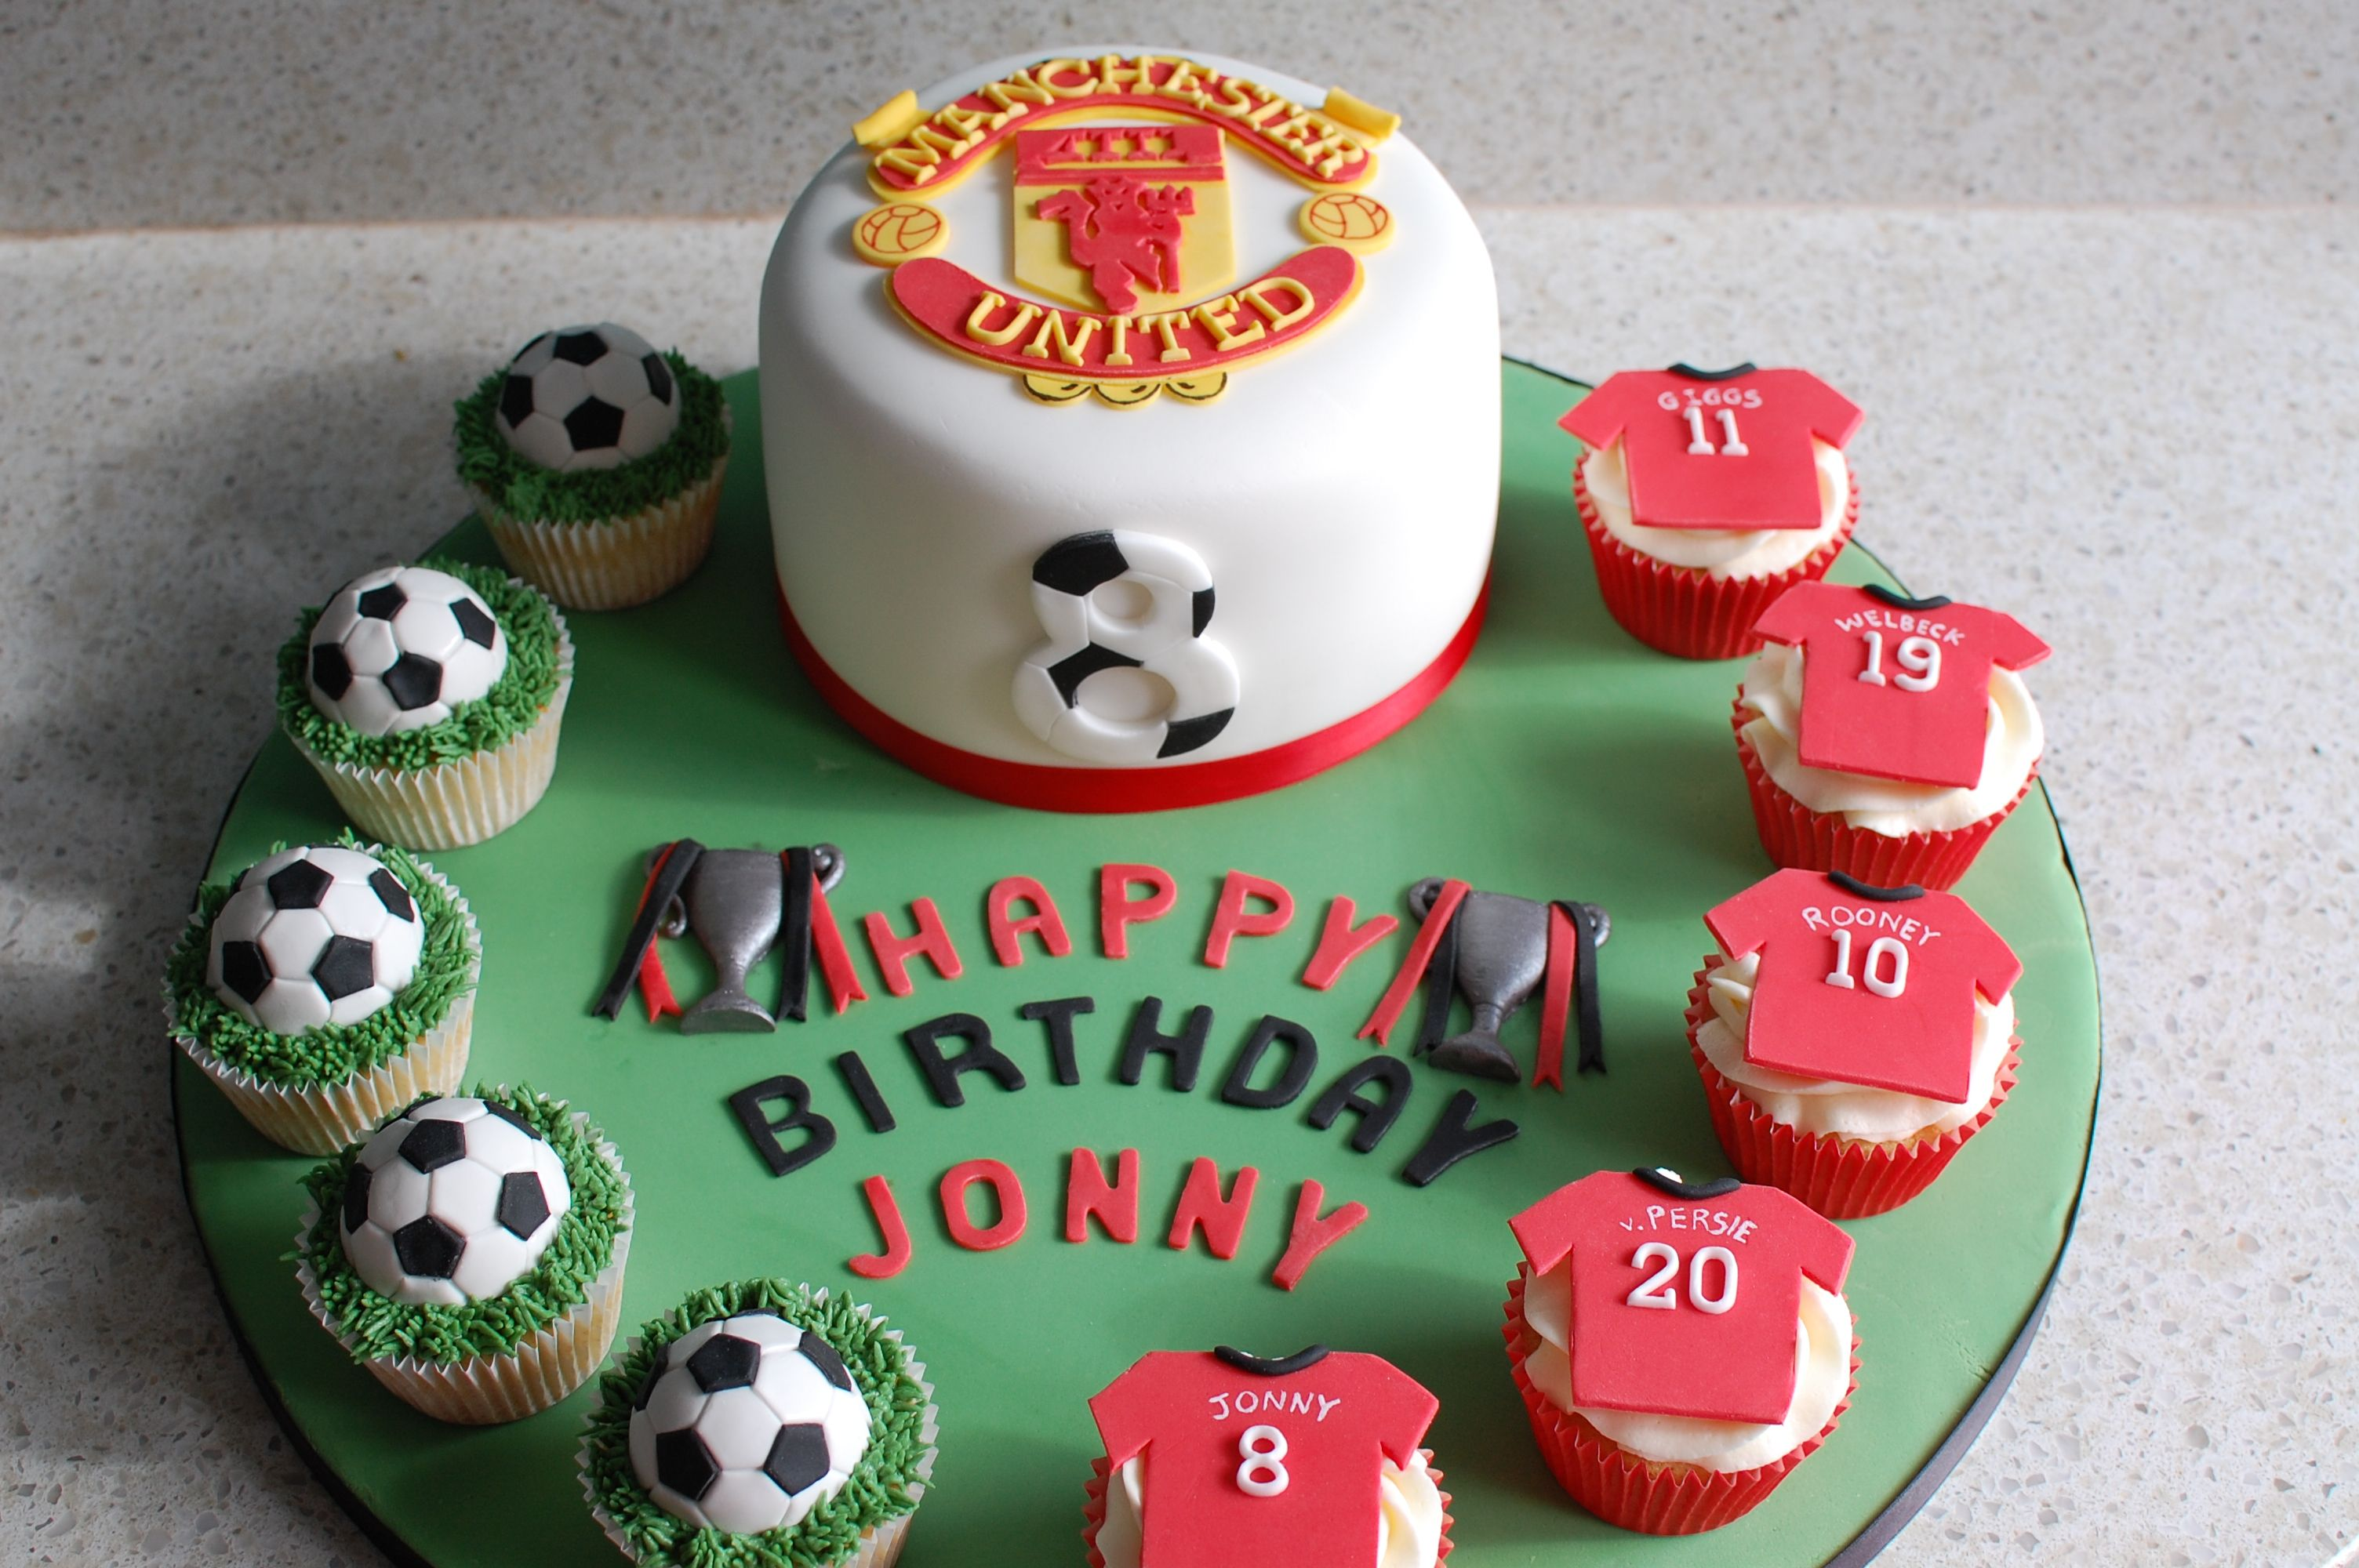 Manchester United Birthday Cake And Cupcakes Man U Logo Hand Carved From Fonda Football Birthday Cake Manchester United Birthday Cake Soccer Birthday Cakes